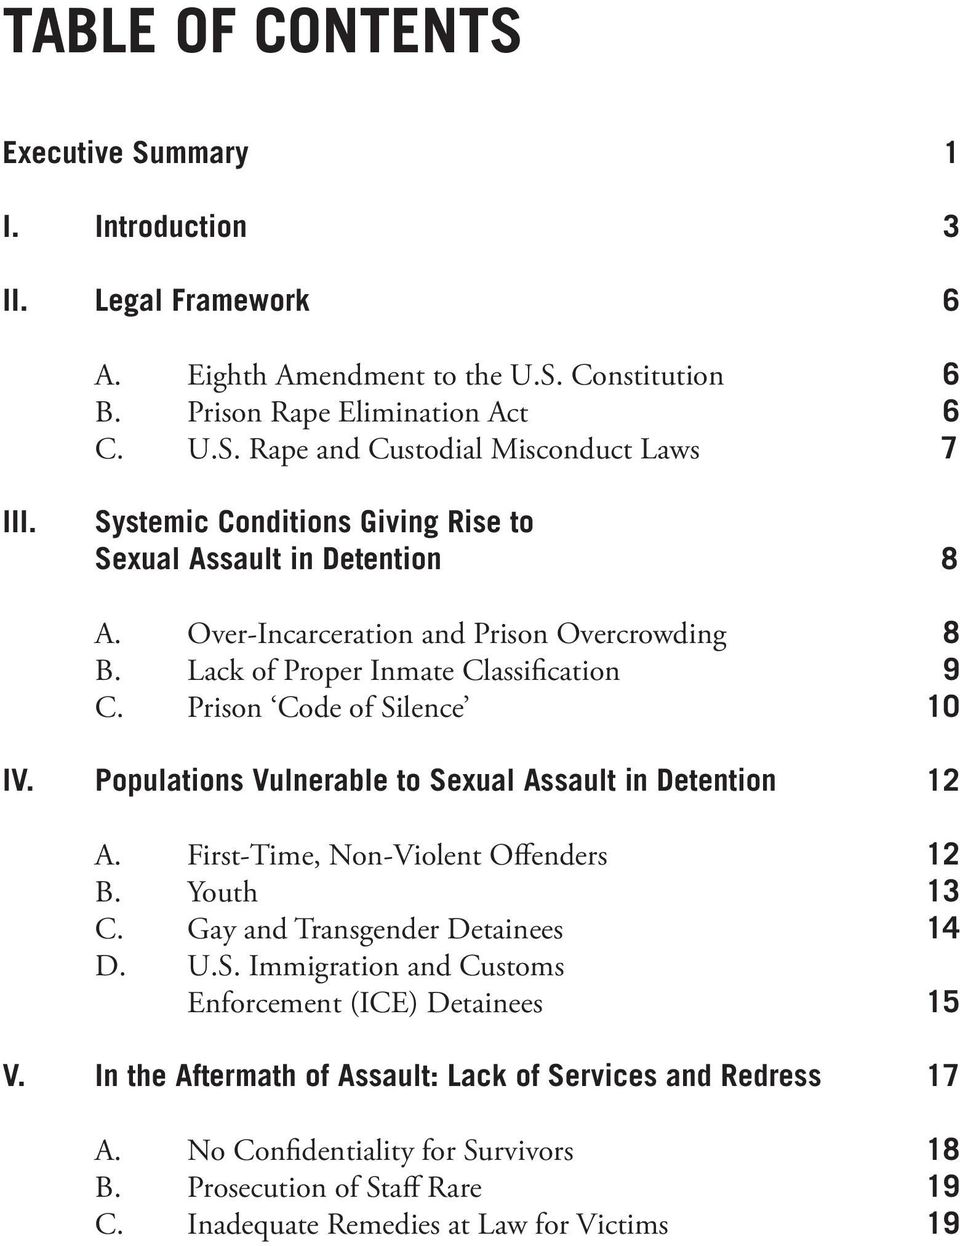 Populations Vulnerable to Sexual Assault in Detention 12 A. First-Time, Non-Violent Offenders 12 B. Youth 13 C. Gay and Transgender Detainees 14 D. U.S. Immigration and Customs Enforcement (ICE) Detainees 15 V.